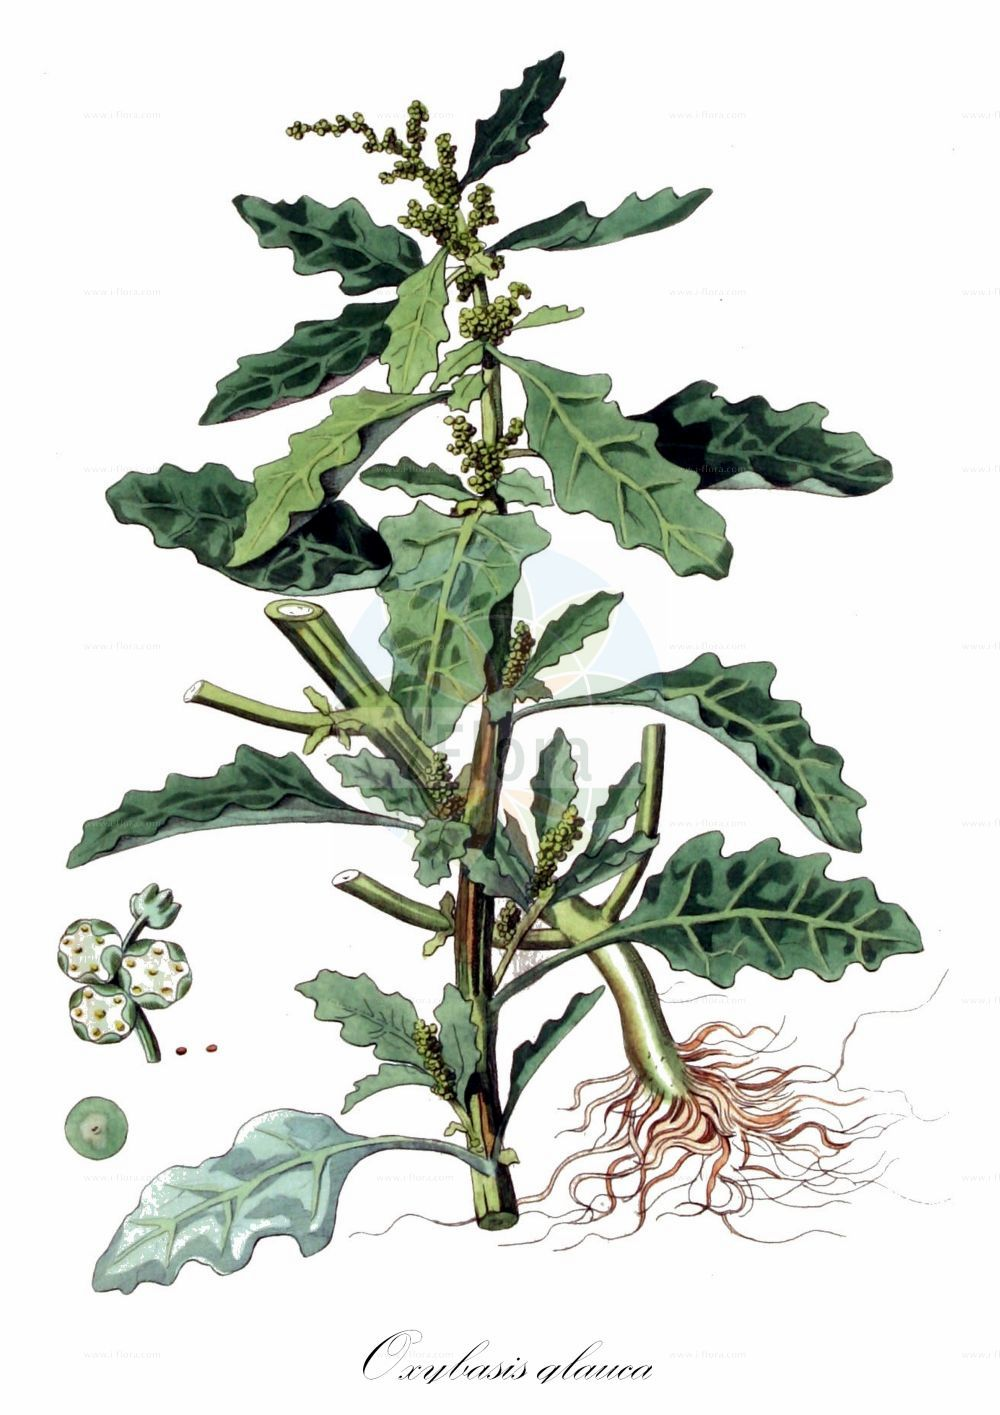 Historische Abbildung von Oxybasis glauca (Graugruener Gaensefuss - Oak-leaved Goosefoot). Das Bild zeigt Blatt, Bluete, Frucht und Same. ---- Historical Drawing of Oxybasis glauca (Graugruener Gaensefuss - Oak-leaved Goosefoot).The image is showing leaf, flower, fruit and seed.(Oxybasis glauca,Graugruener Gaensefuss,Oak-leaved Goosefoot,Chenopodium glaucum,Chenopodium wolffii,,Grauer Gaensefuss,Glaucous Goosefoot,Oak-leaf Goosefoot,Oxybasis,Amaranthaceae,Fuchsschwanzgewaechse,Pigweed family,Blatt,Bluete,Frucht,Same,leaf,flower,fruit,seed,Kops (1800-1934))